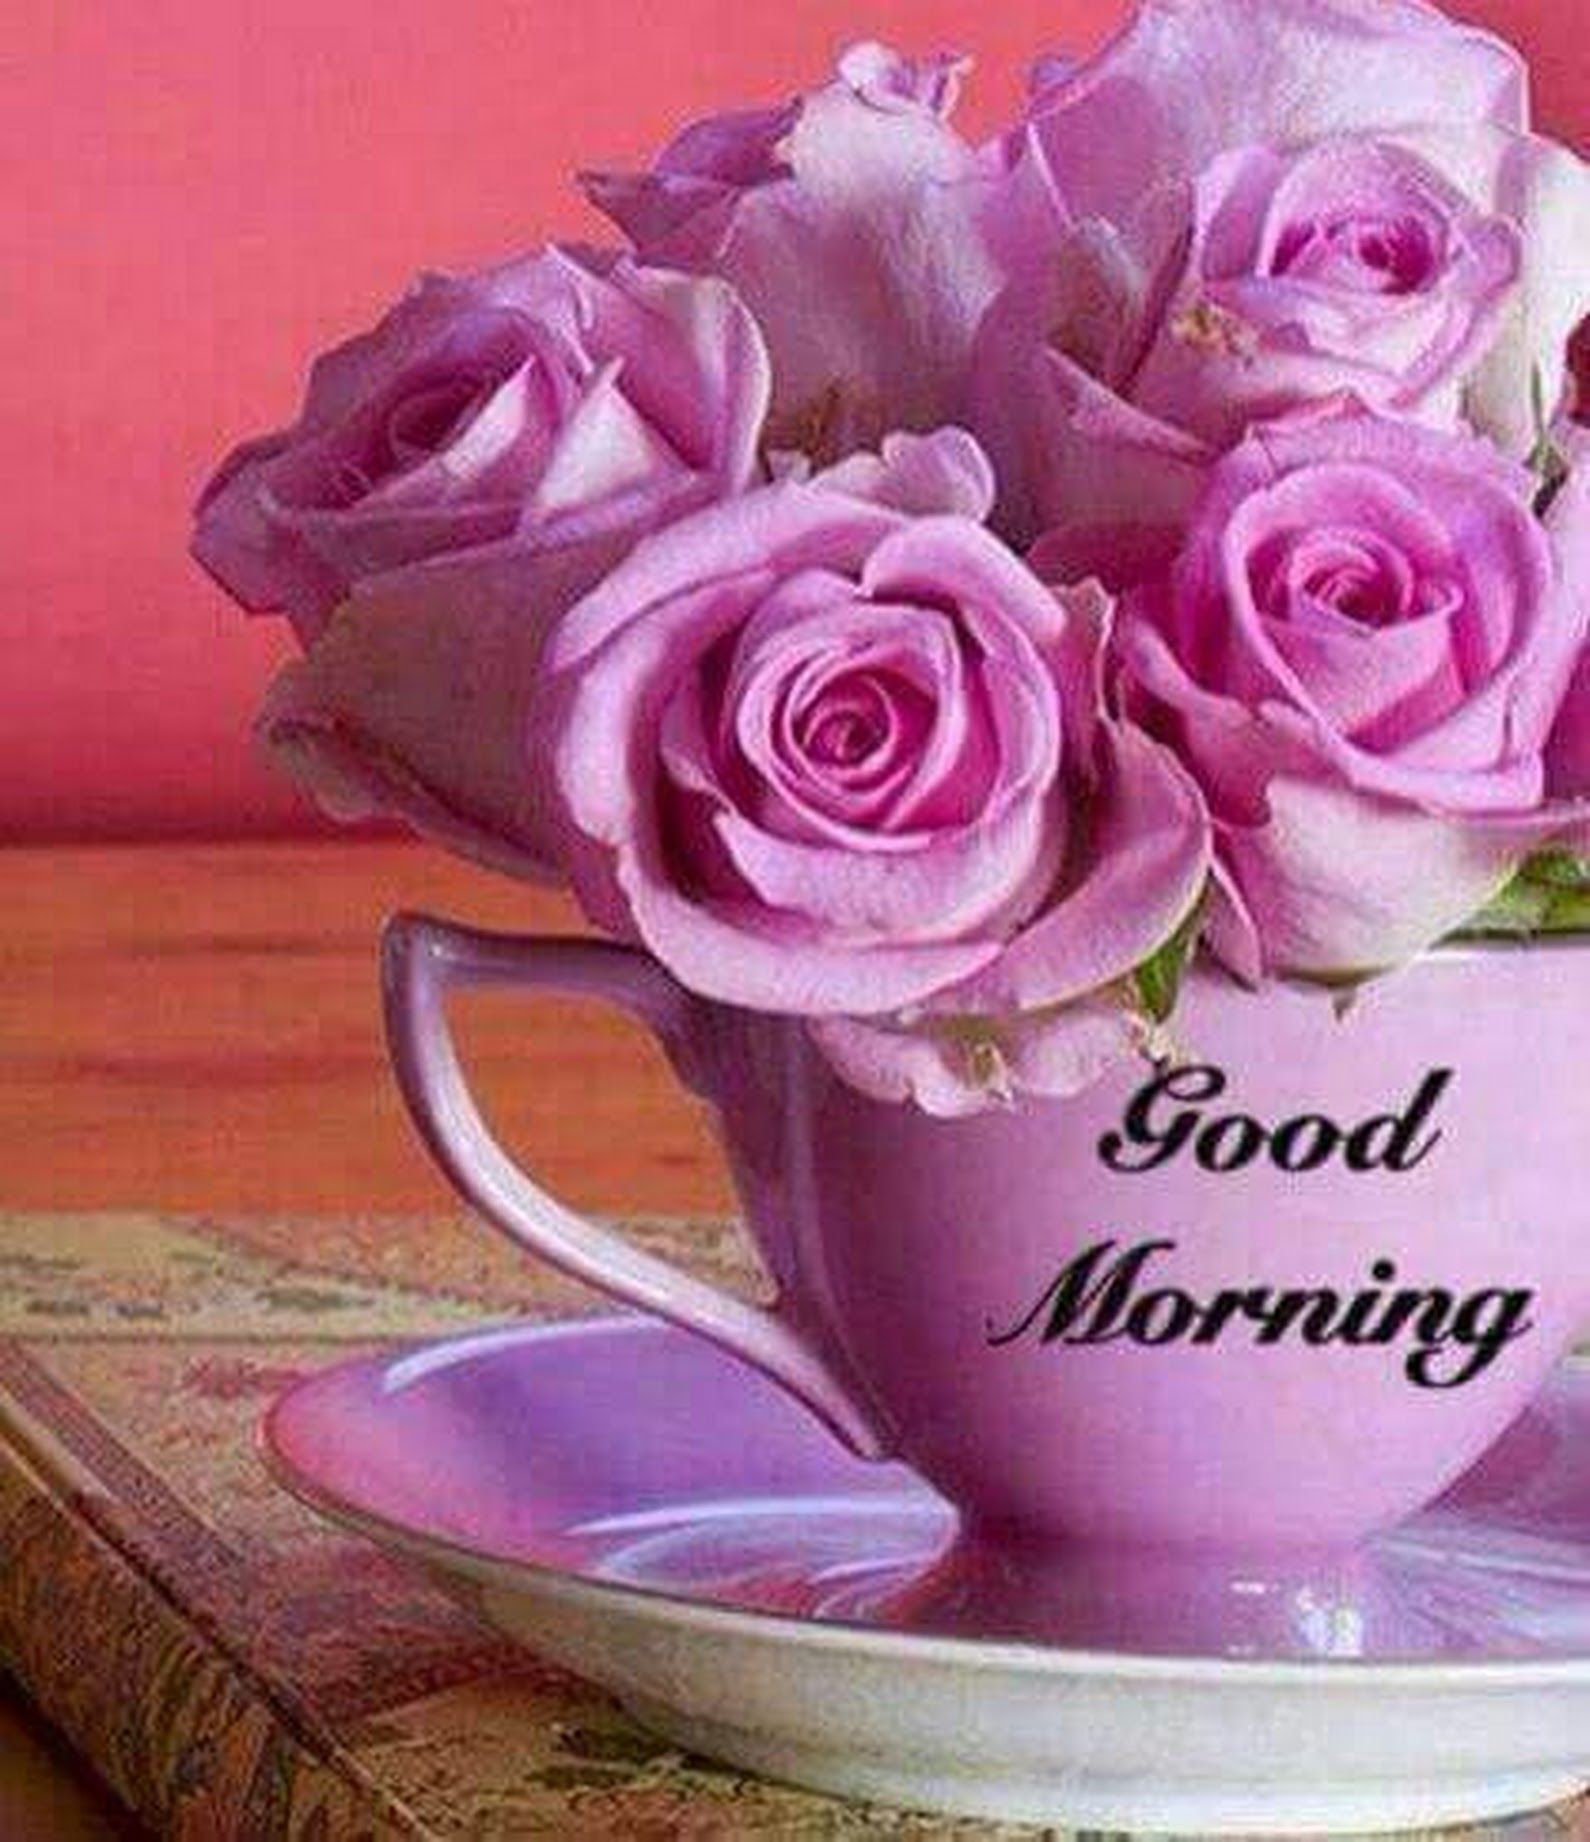 Good morning beautiful friends Have a lovely day Krishna Roy